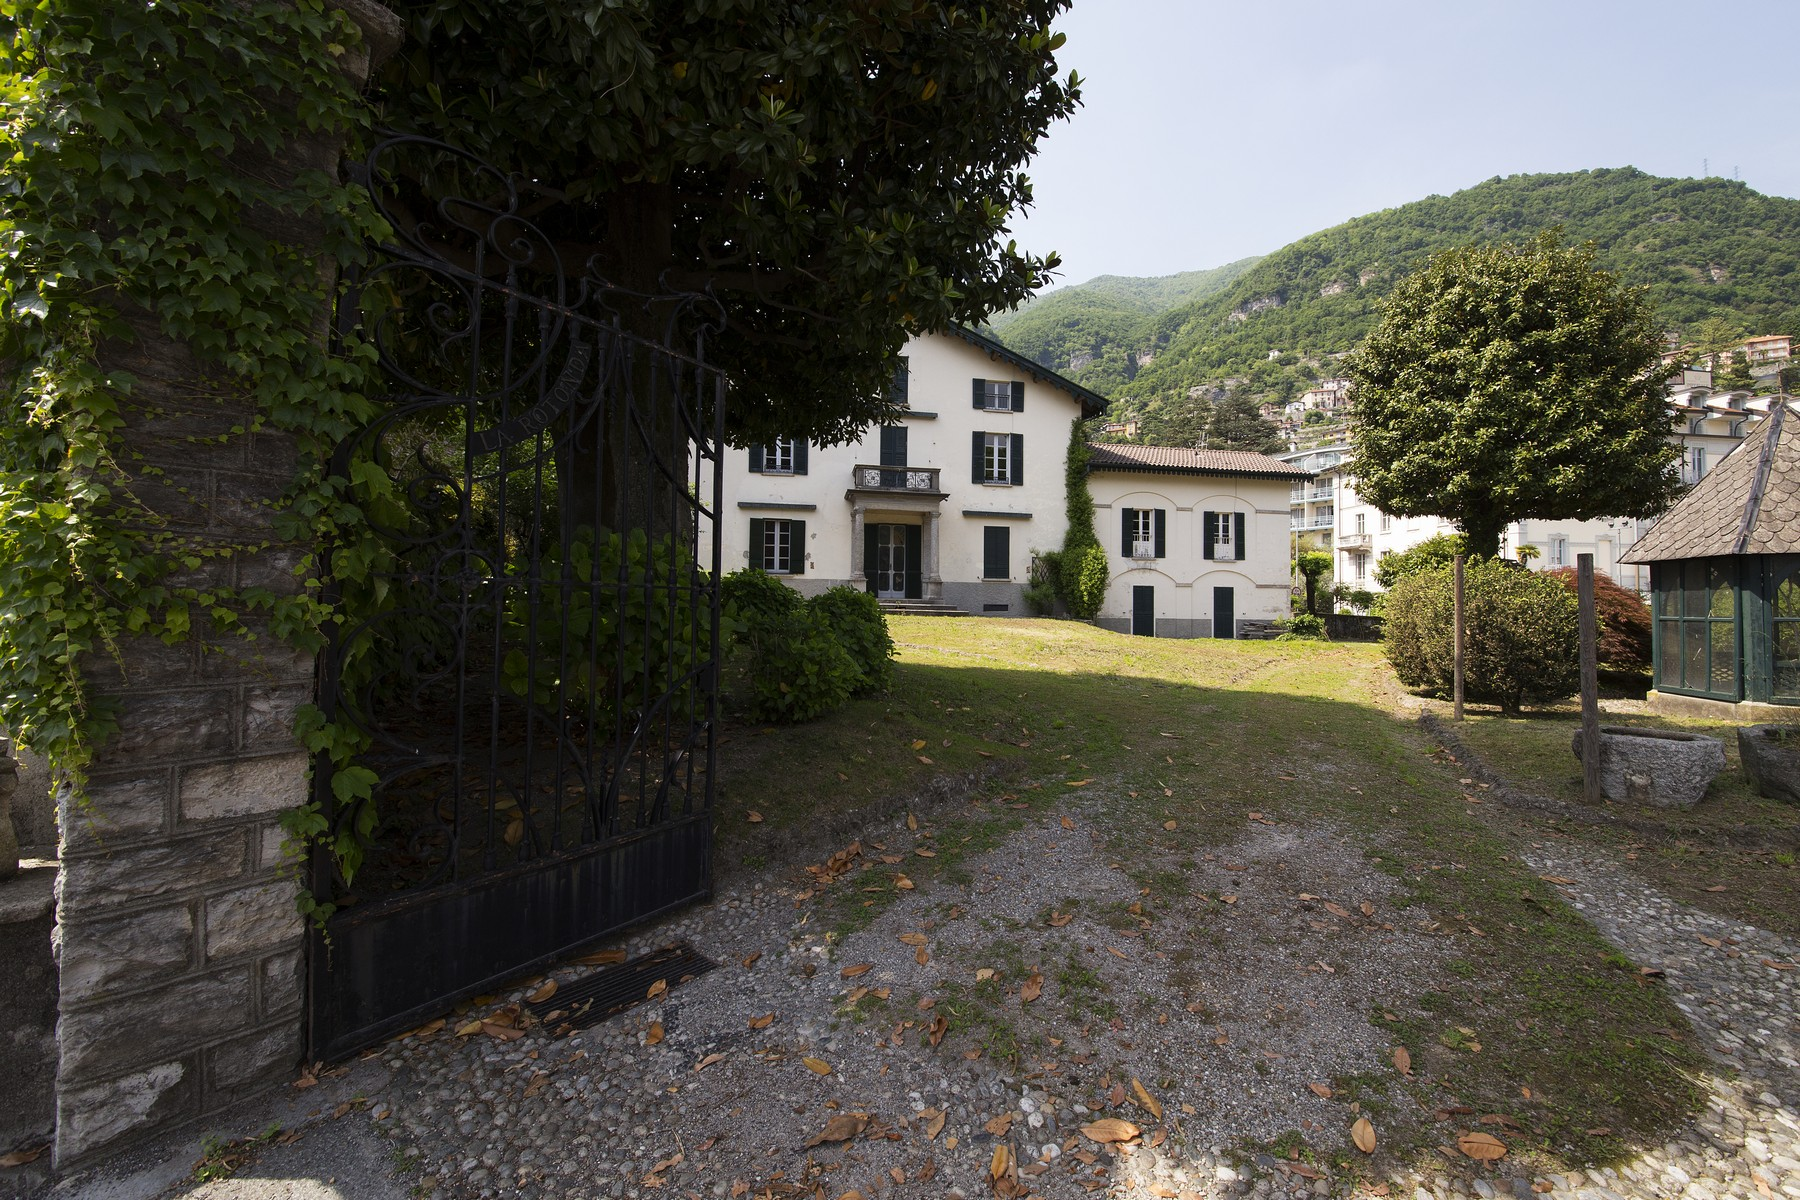 Additional photo for property listing at Charming property close to the shore of the lake Via Raschi Moltrasio, Como 22010 Italy